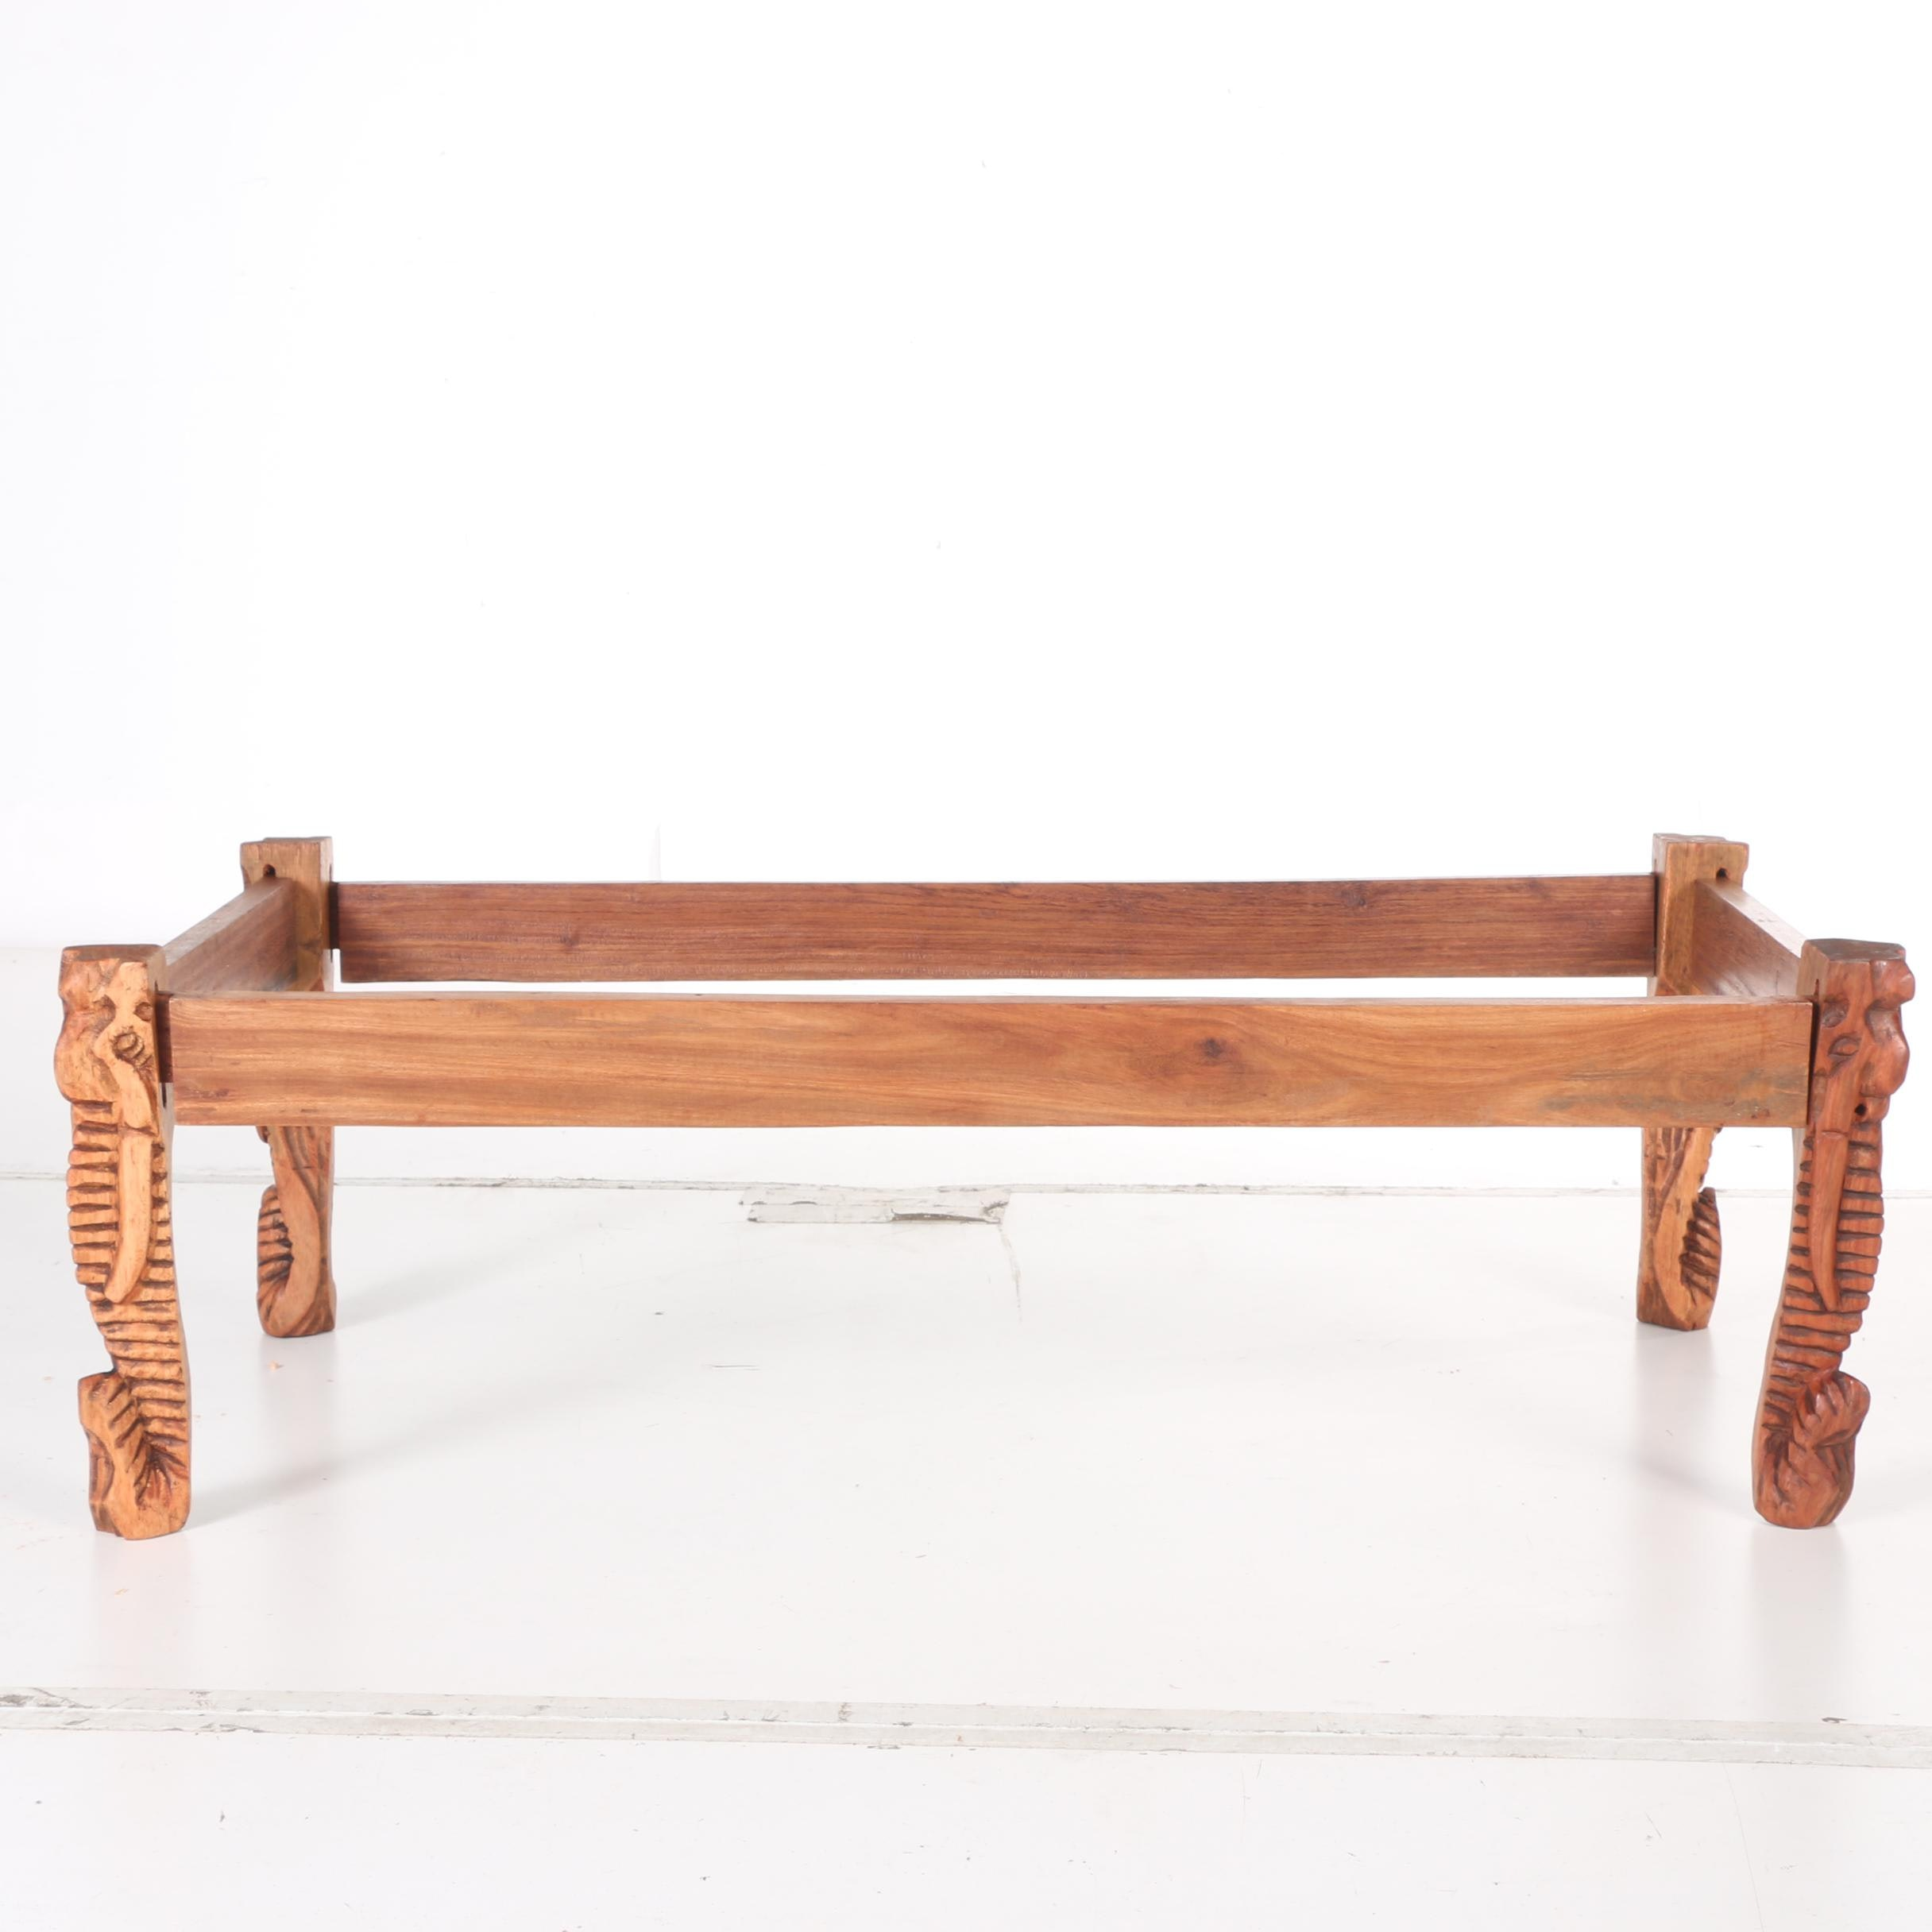 Carved Elephant Motif Coffee Table Frame